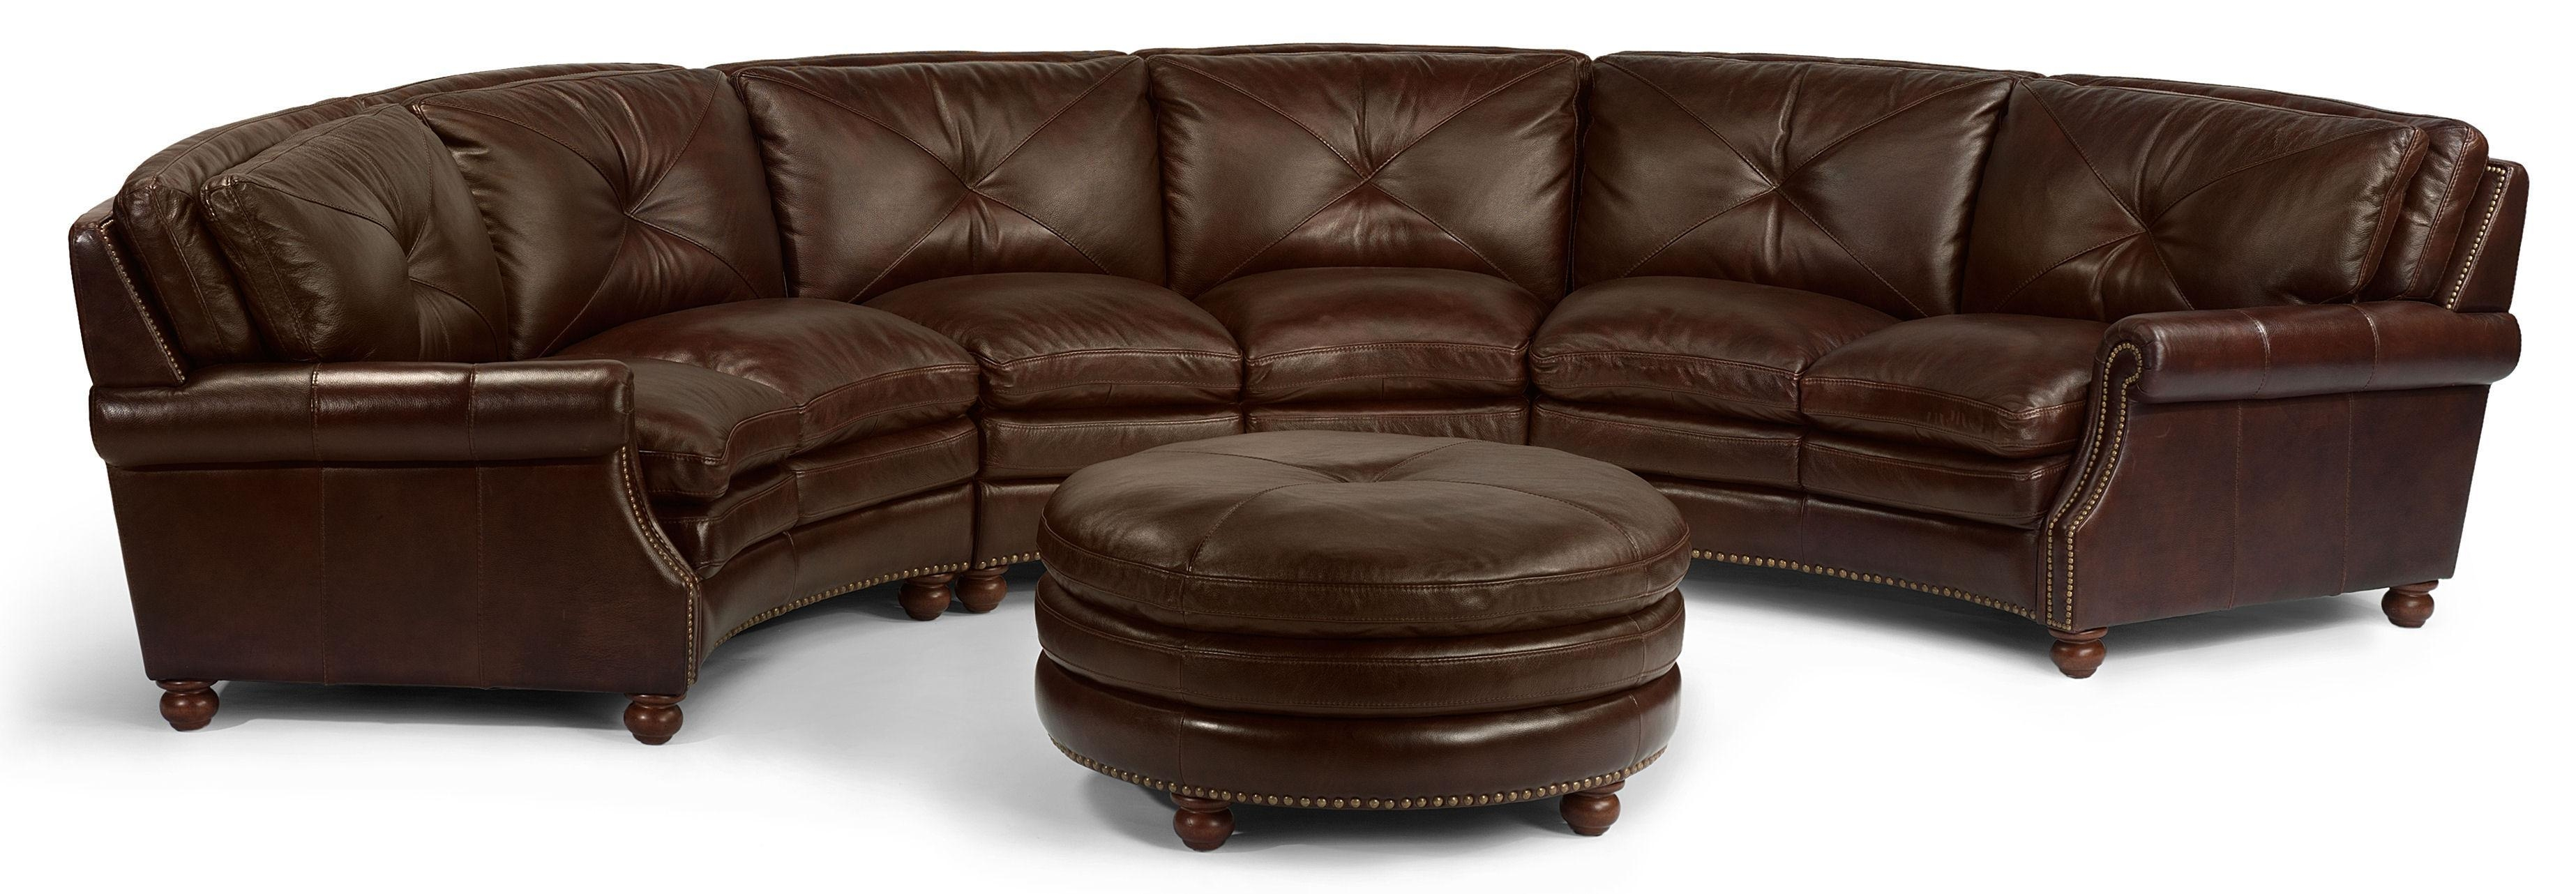 Flexsteel Latitudes Suffolk Round Sectional Sofa With Nailhead Pertaining To Circular Sectional Sofa (View 15 of 15)